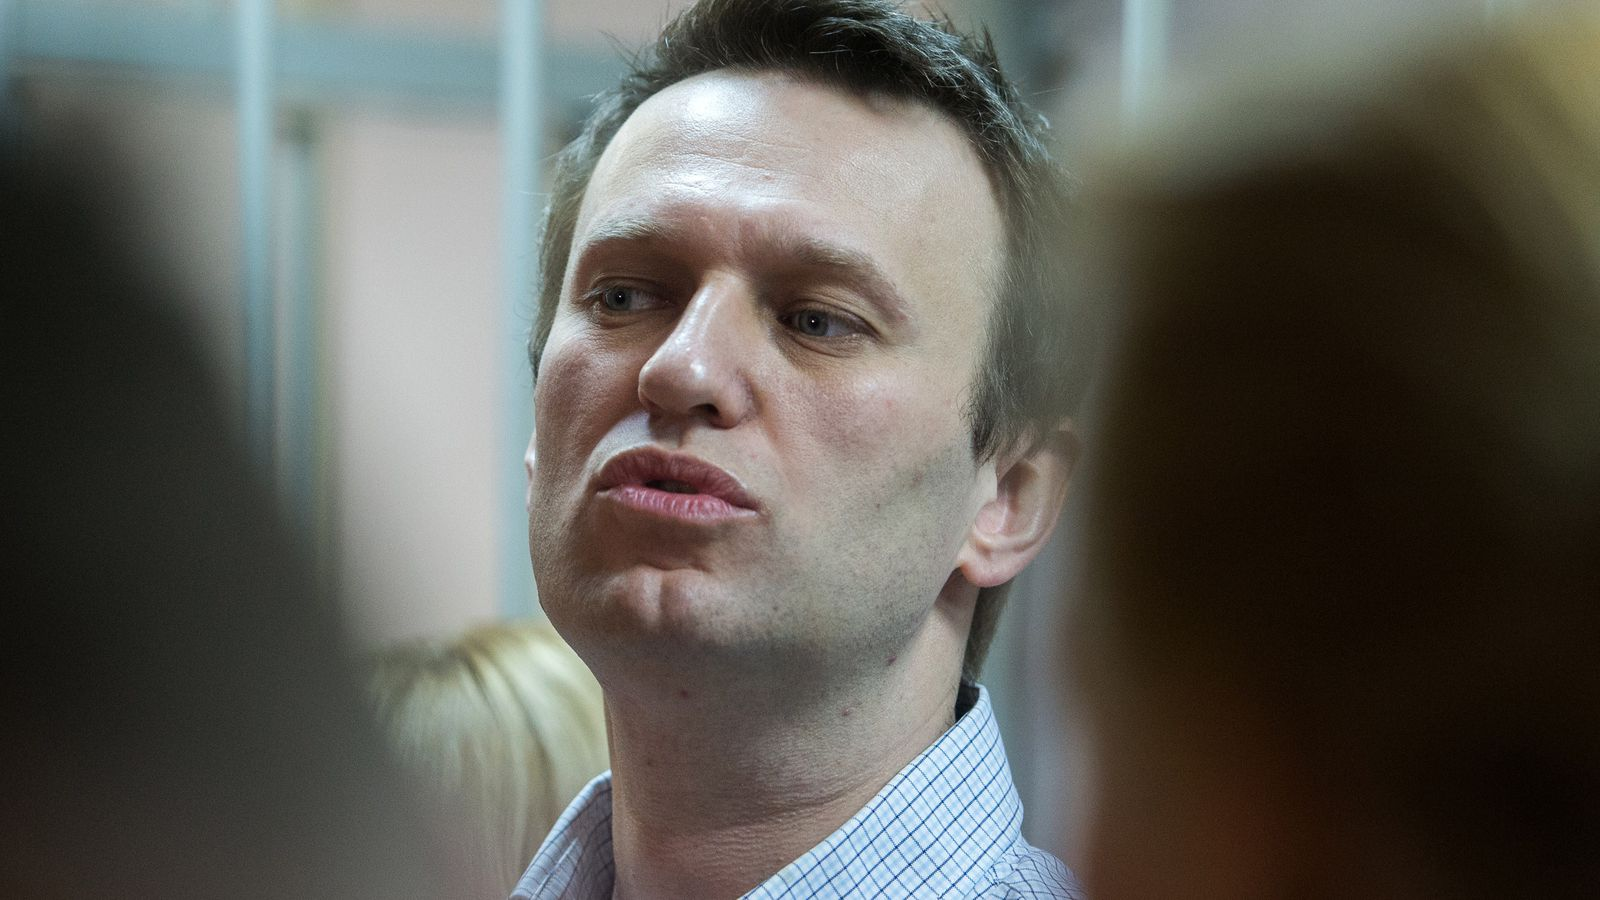 Who is Alexei Navalny, and why does he scare Putin so much ...